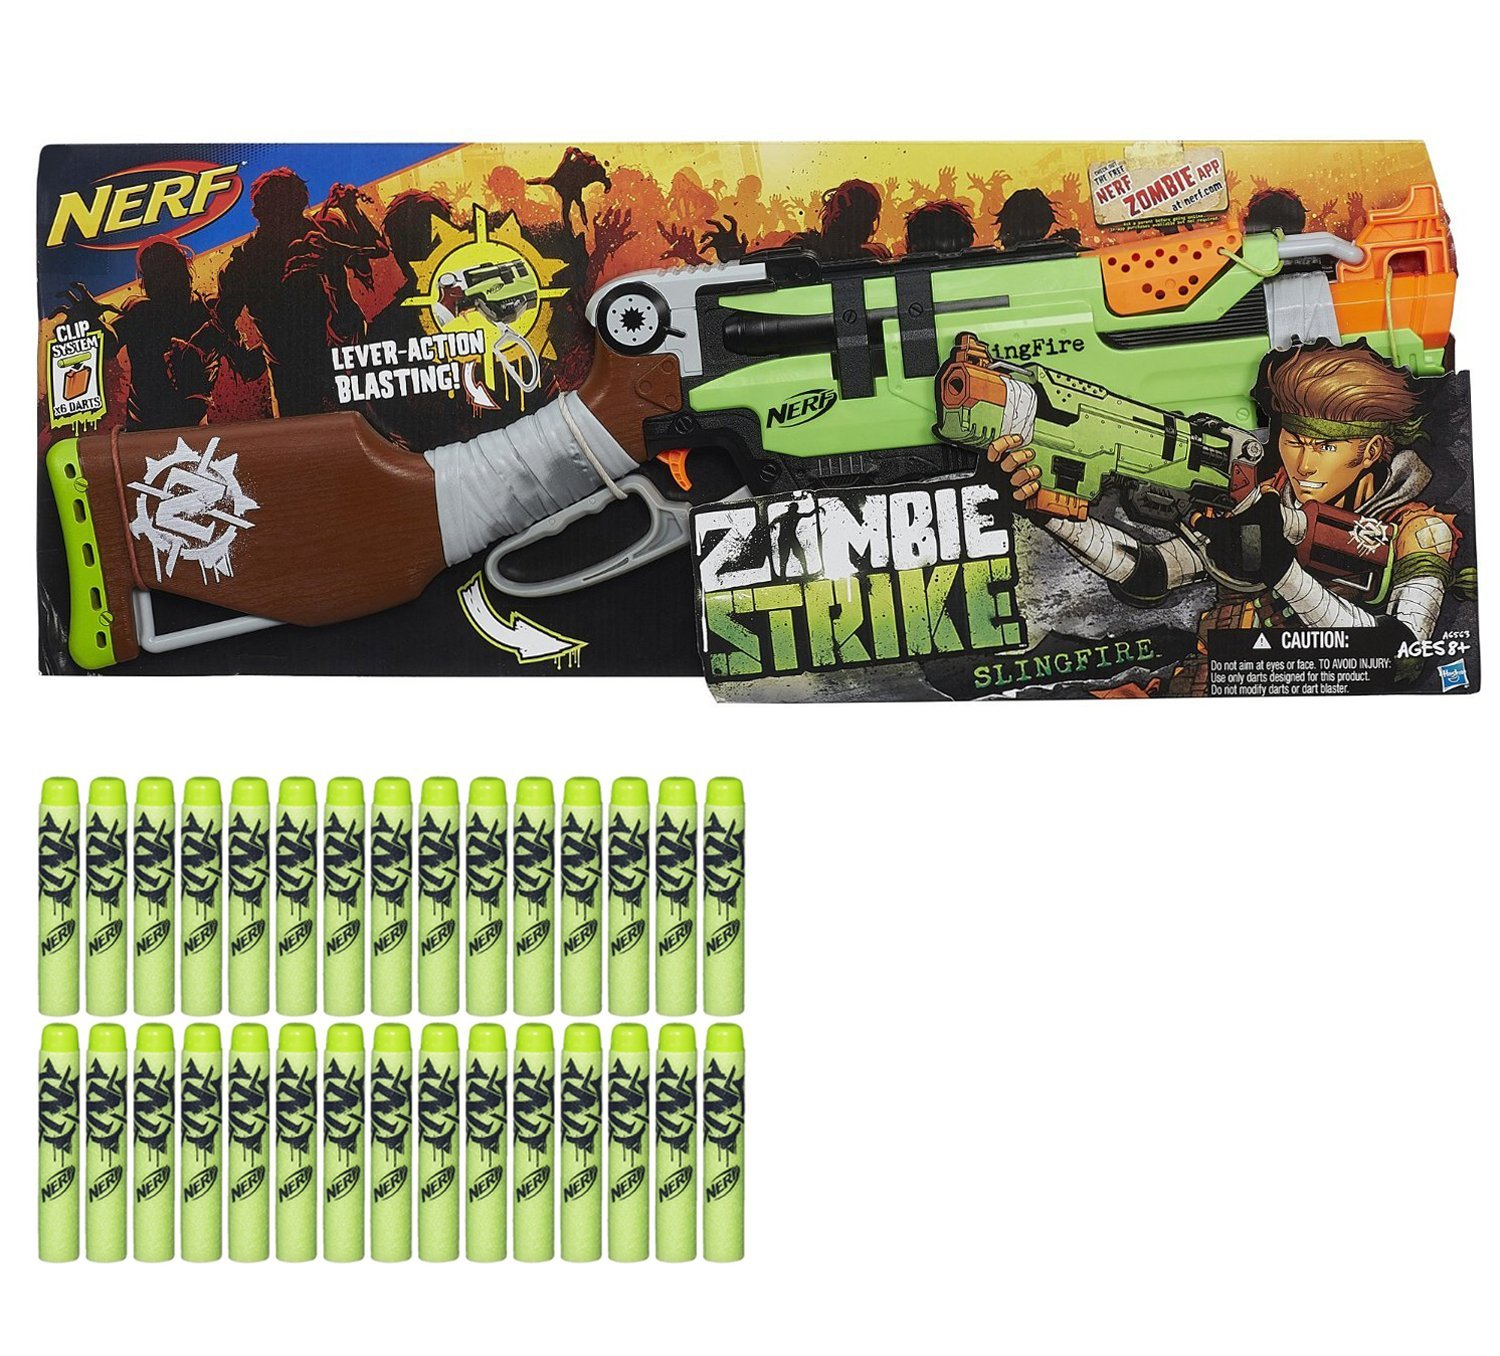 Nerf Zombie Strike SlingFire Blaster with Nerf Zombie Strike Dart Refill Pack Bundle of 2 Items